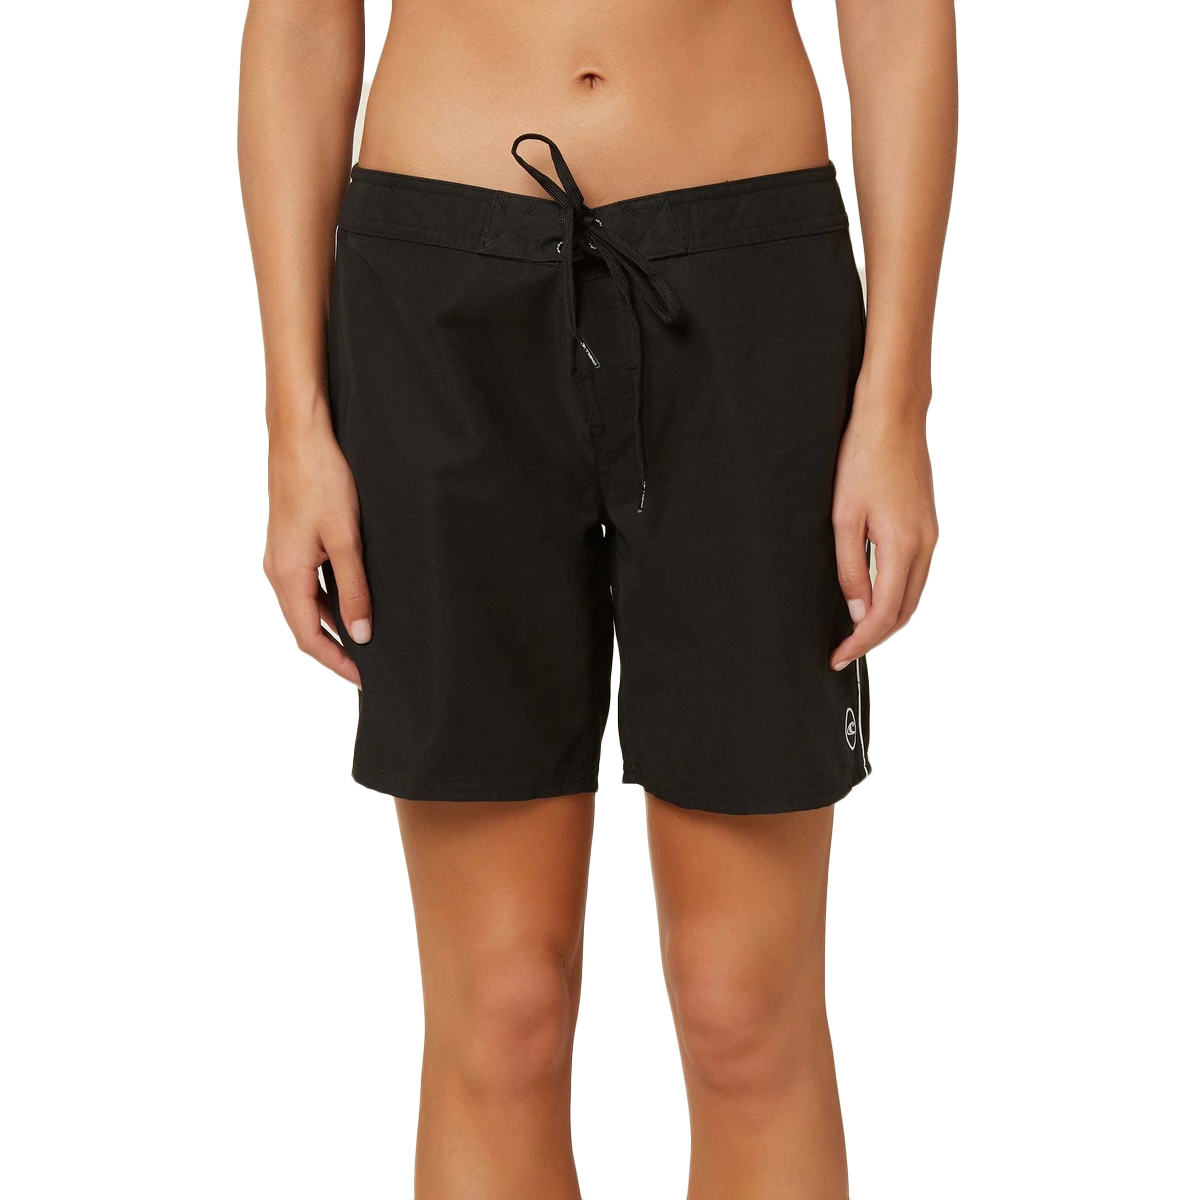 "O'neill Women's Saltwater Solids 7"" Boardshort - Black, 11"